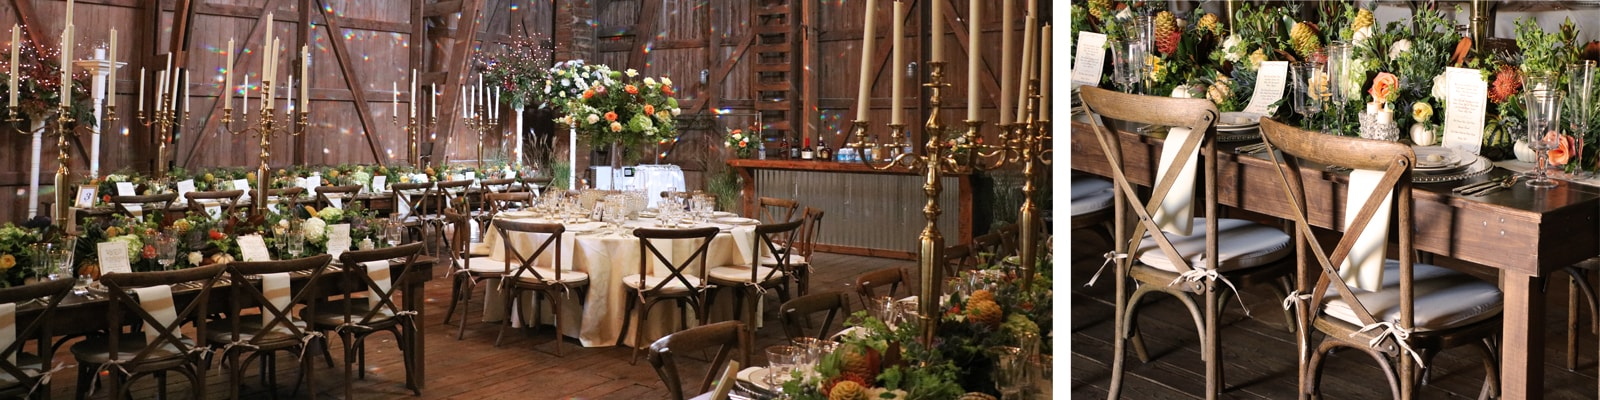 Wedding rentals in South Bend-Mishawaka Metro Area